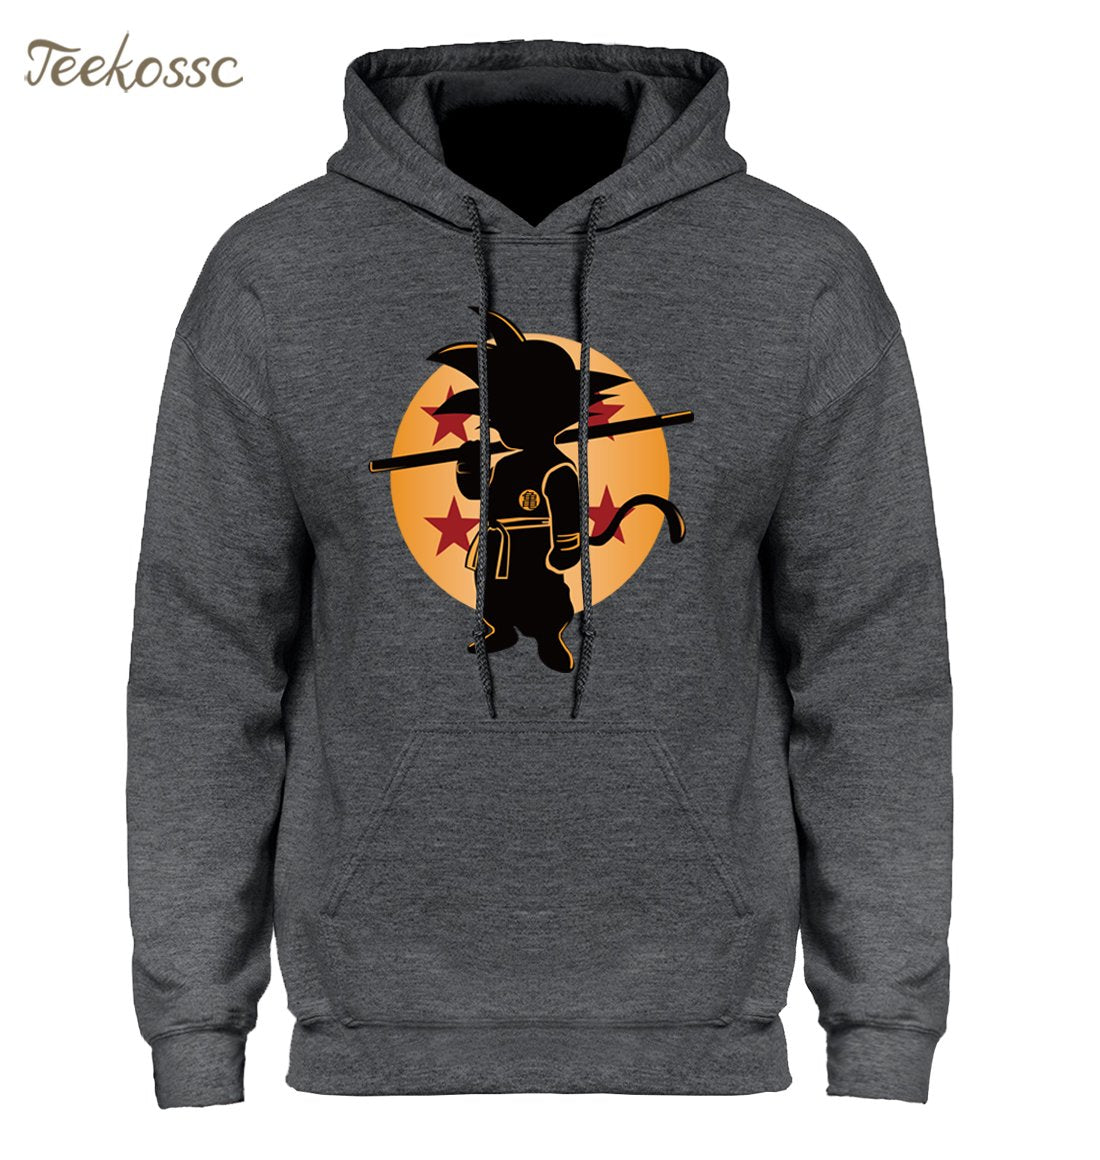 Dragon Ball Z Pocket Hoodie Men Japan Anime Hoodies Mens DragonBall Hooded Sweatshirt 2018 Winter Pullover Long Sleeve Outerwear-noashe